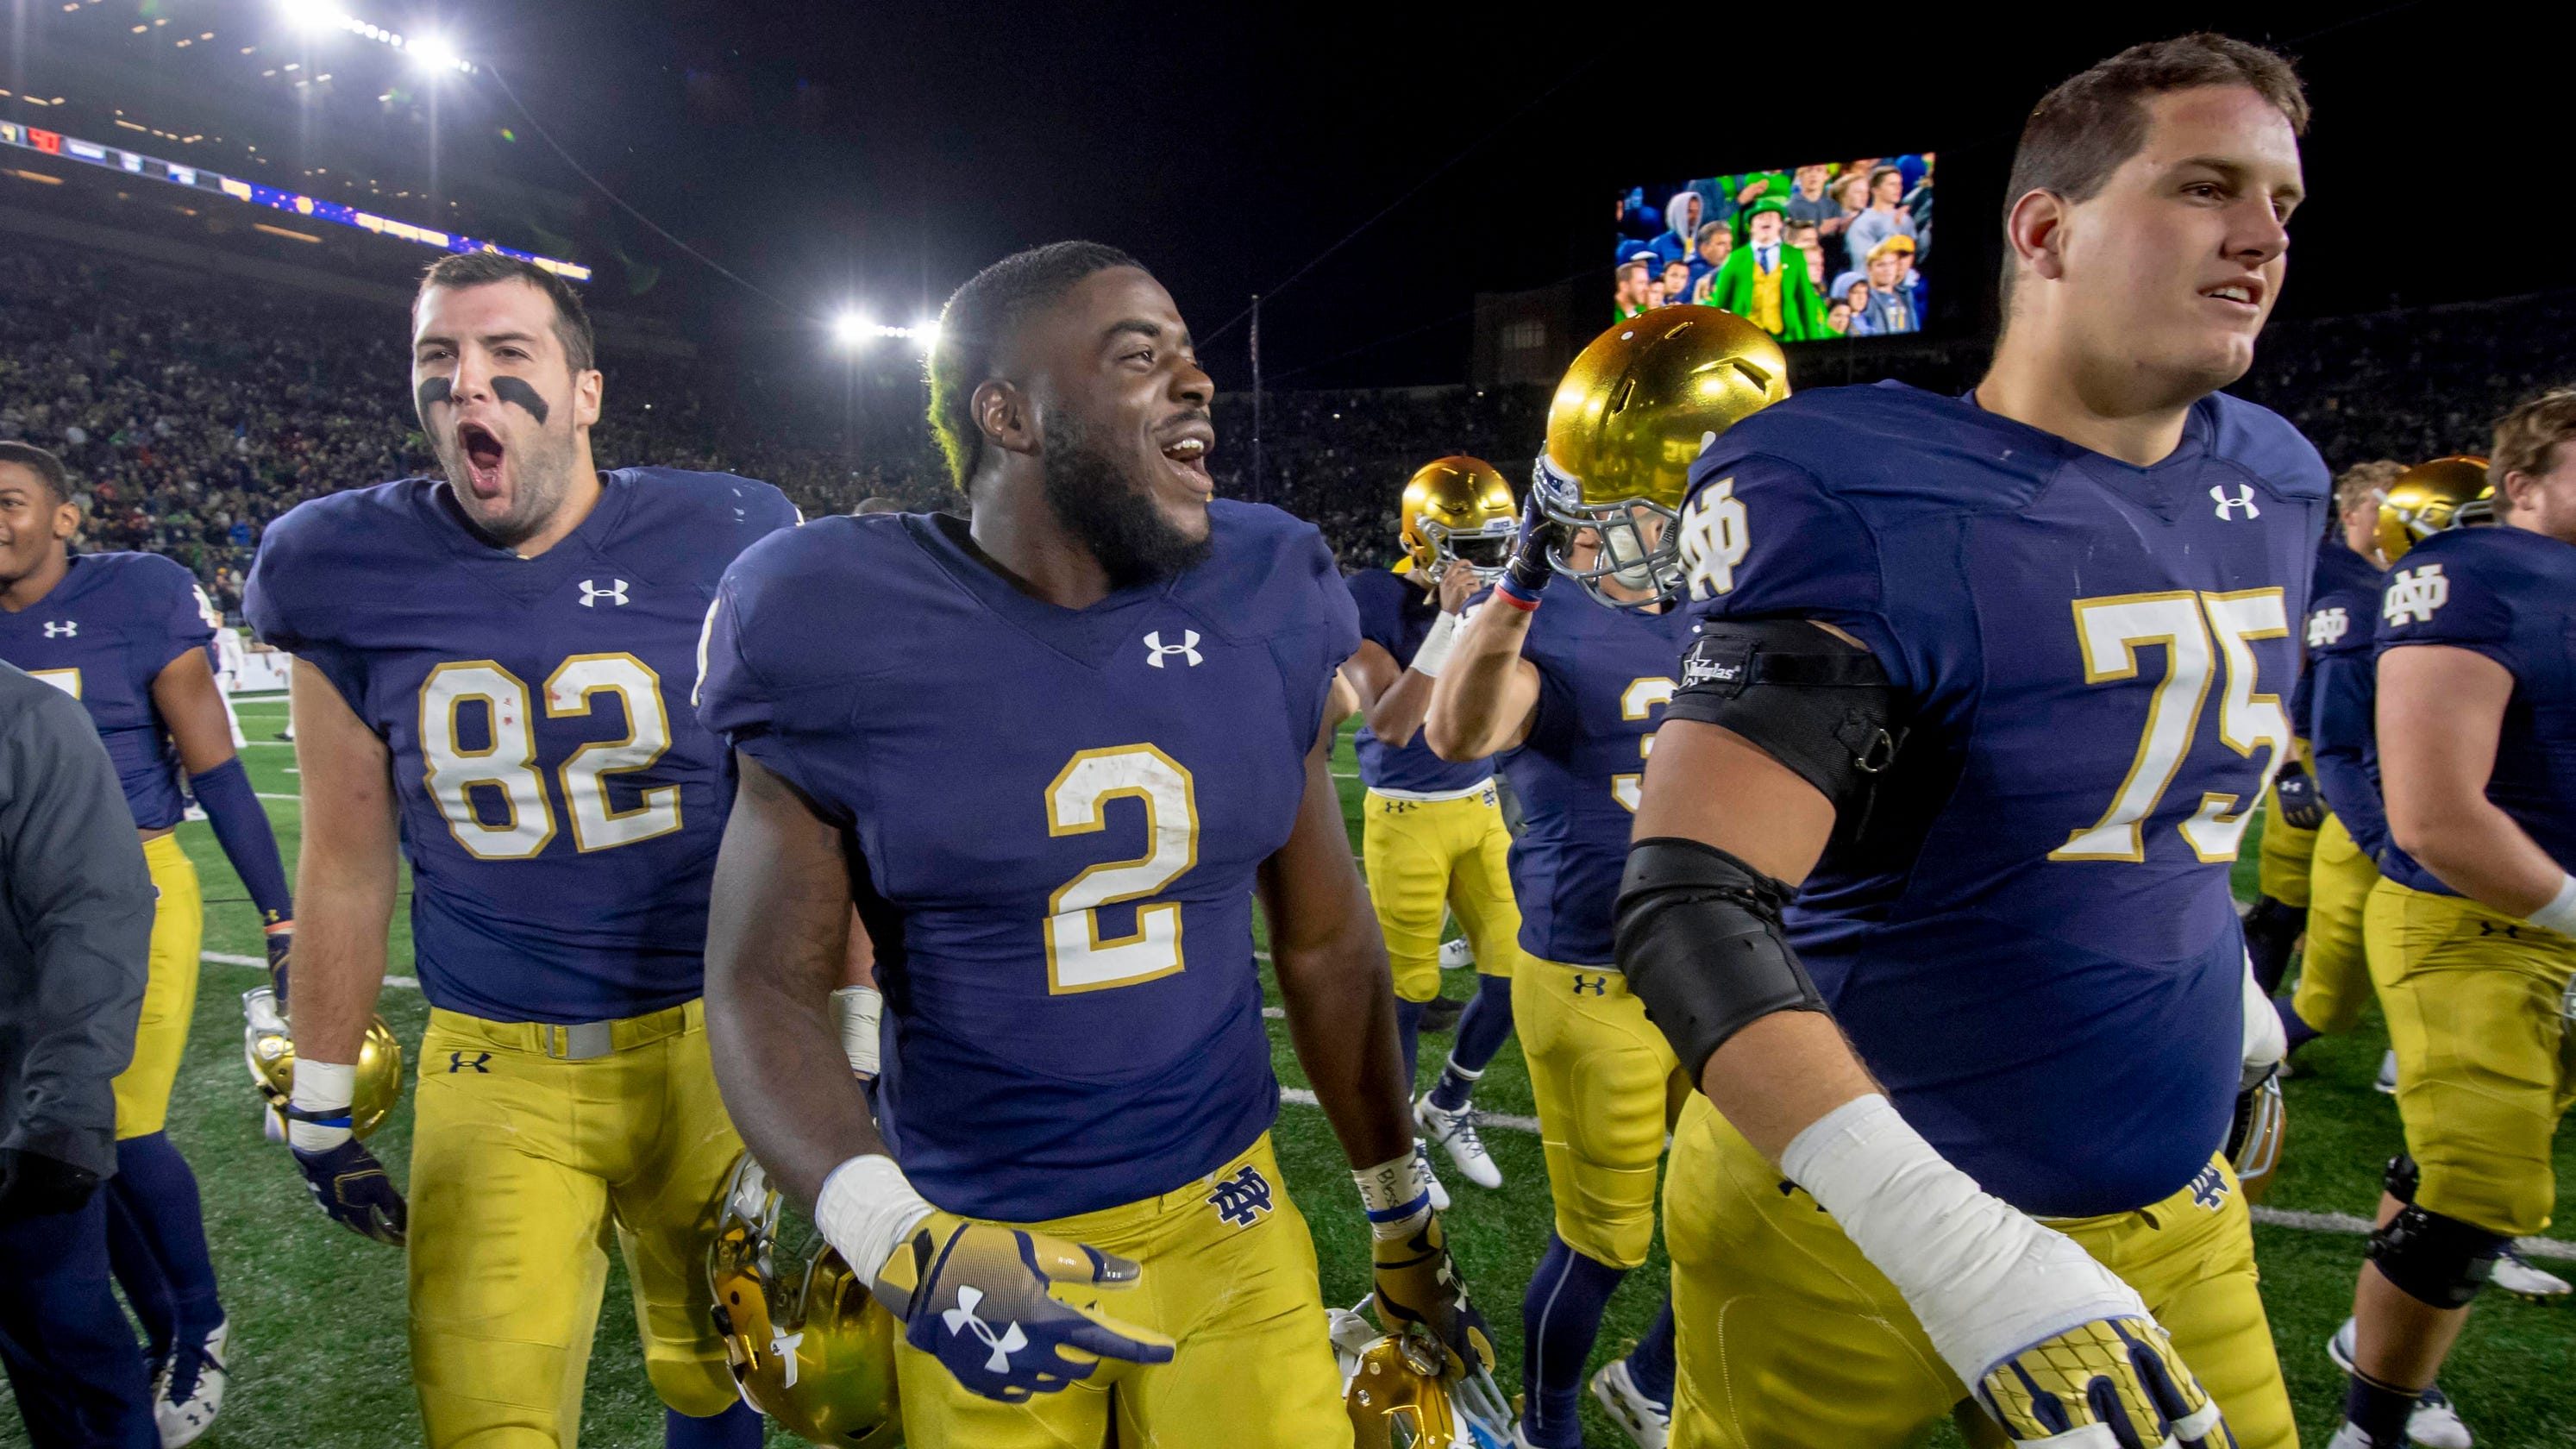 a1f8bb54a Notre Dame football path to CFB playoff stirs up echoes of 2012 run